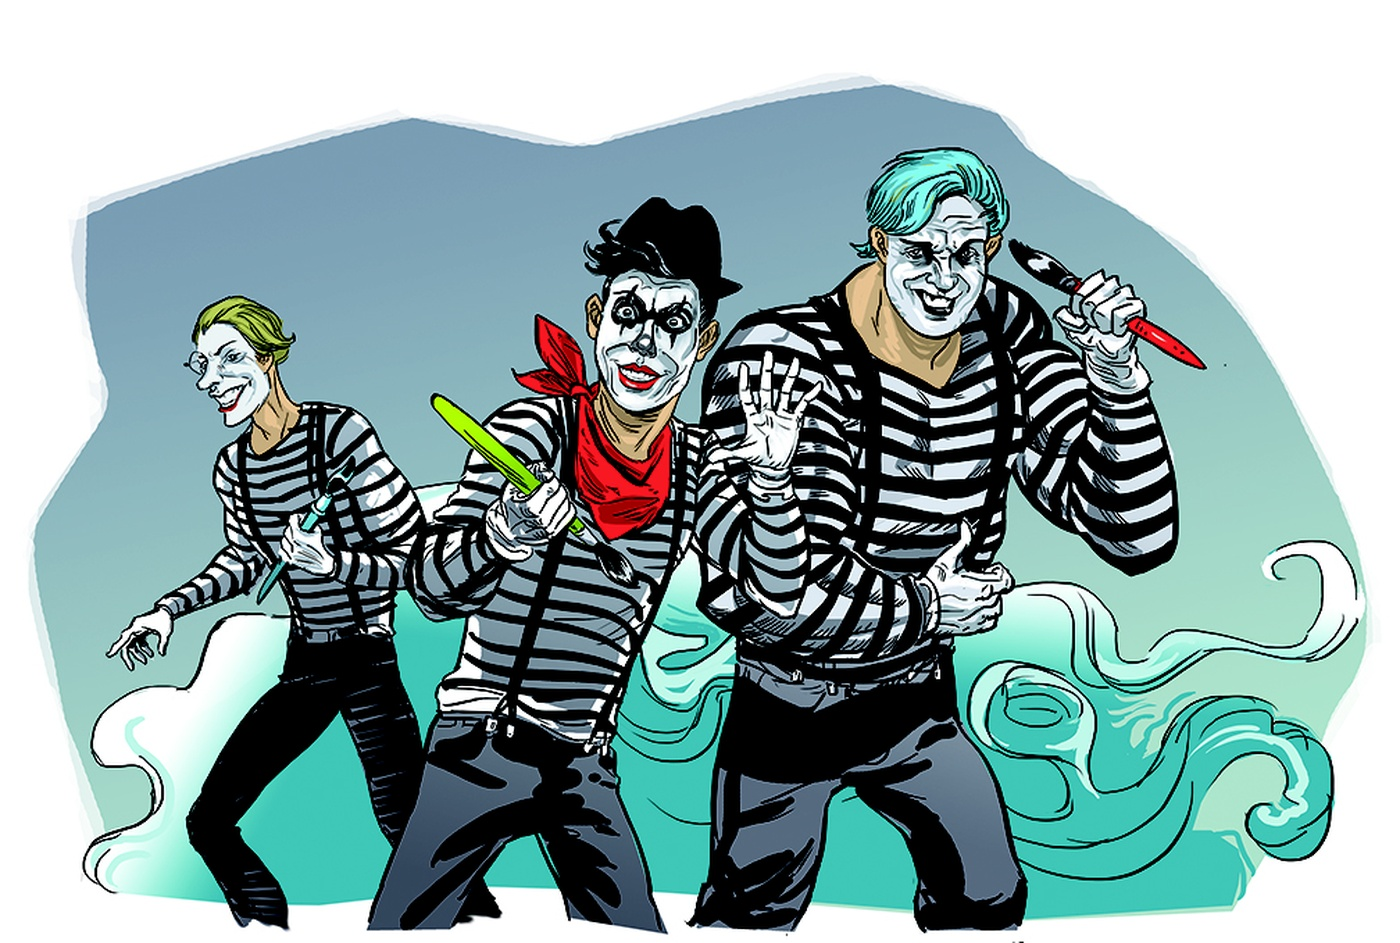 Simon Dupuis - Mimes-final illustration